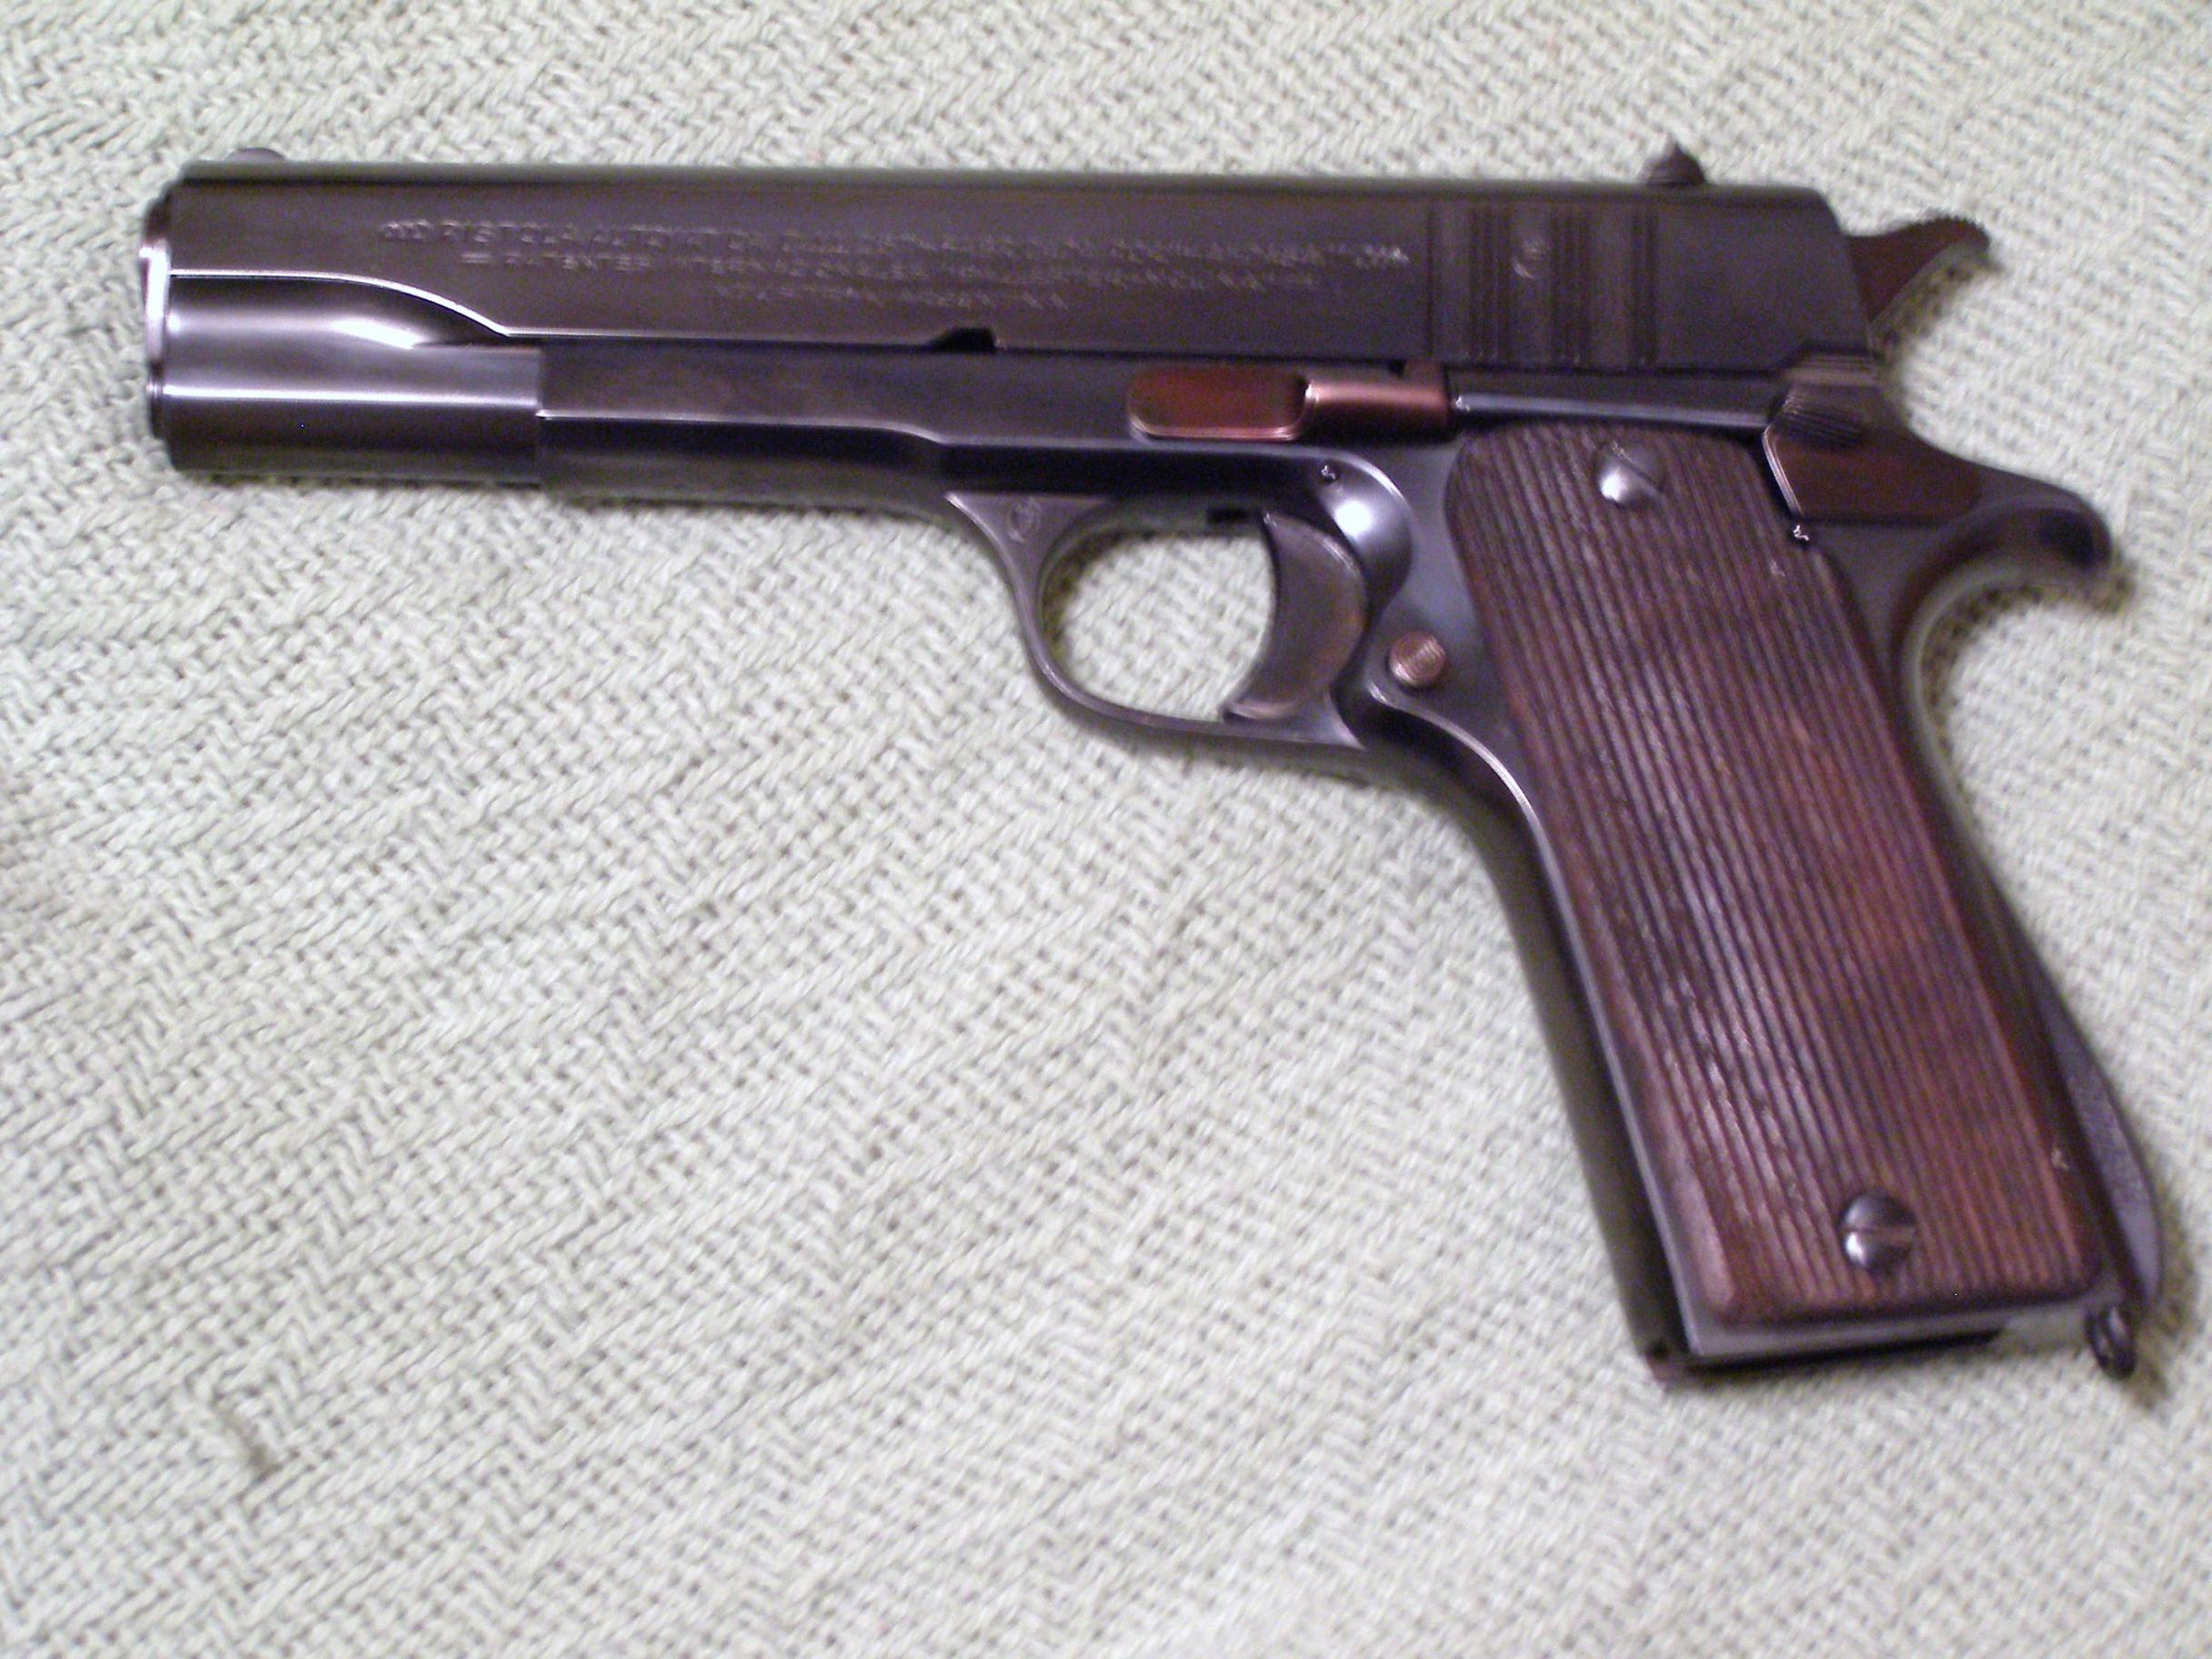 Oldest Firearm design in your inventory?-pb170001.jpg